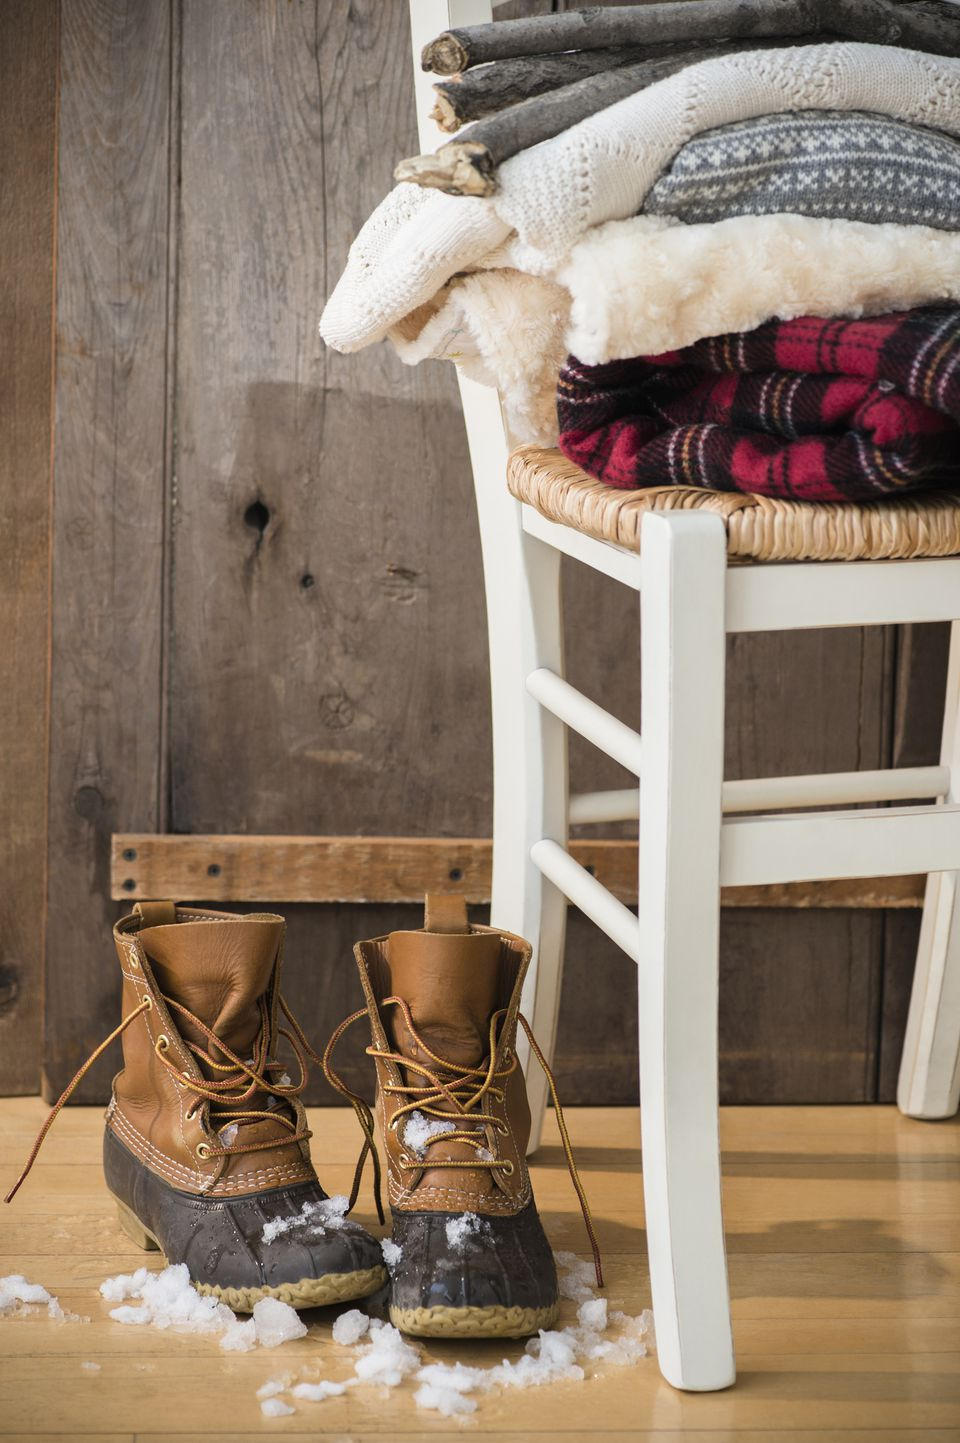 Studio Shot of snow boots and folded blankets